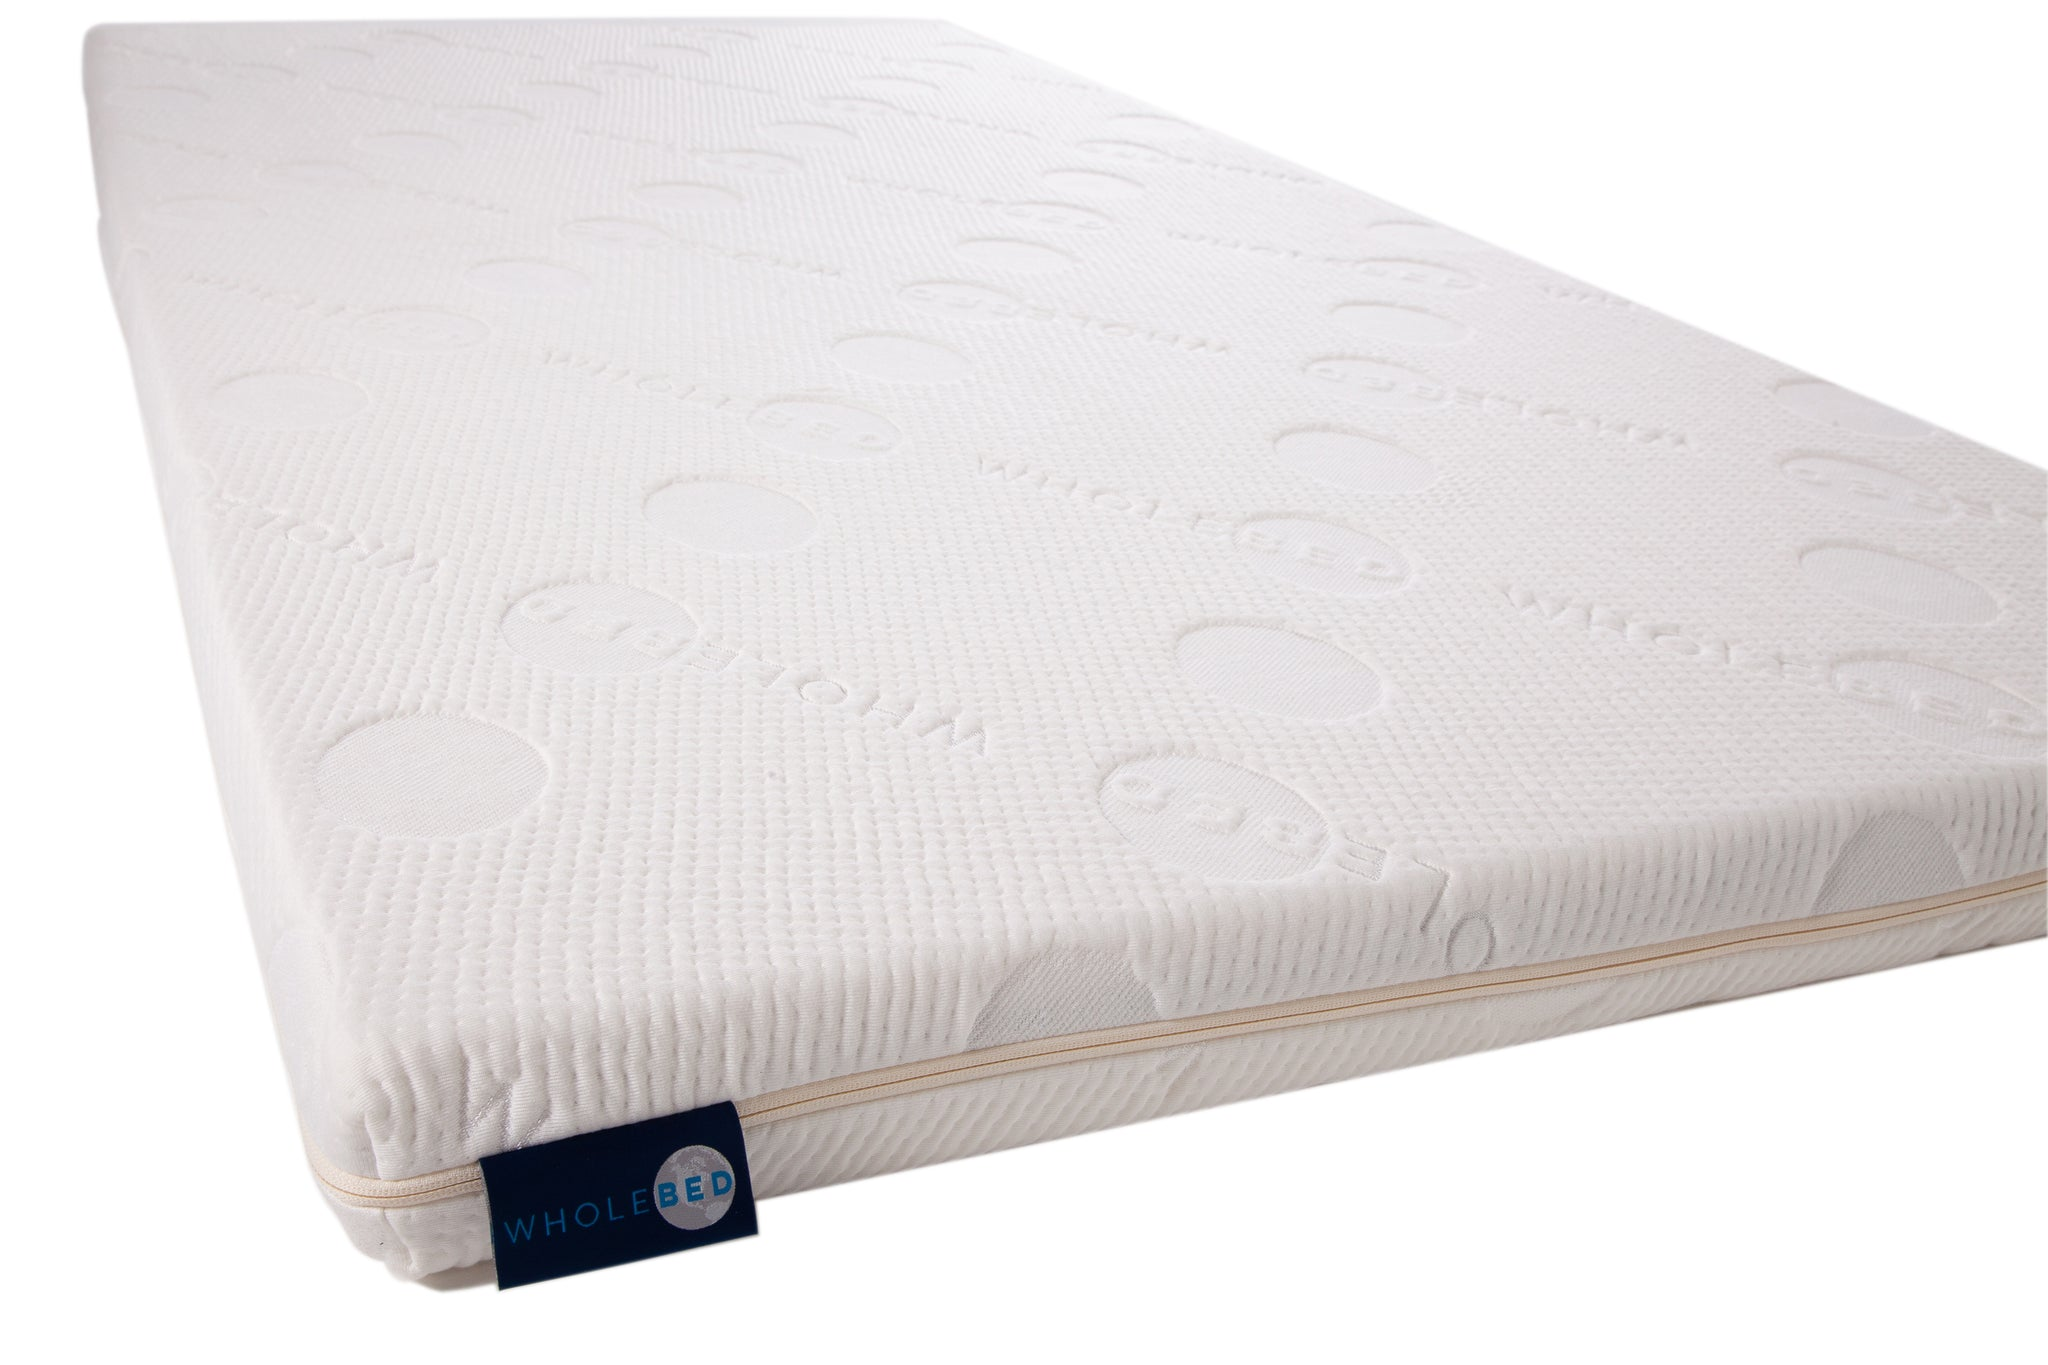 "5.  THE WHOLE TOPPER -- 2"" TWIN XL Size All Natural Mattress Topper"